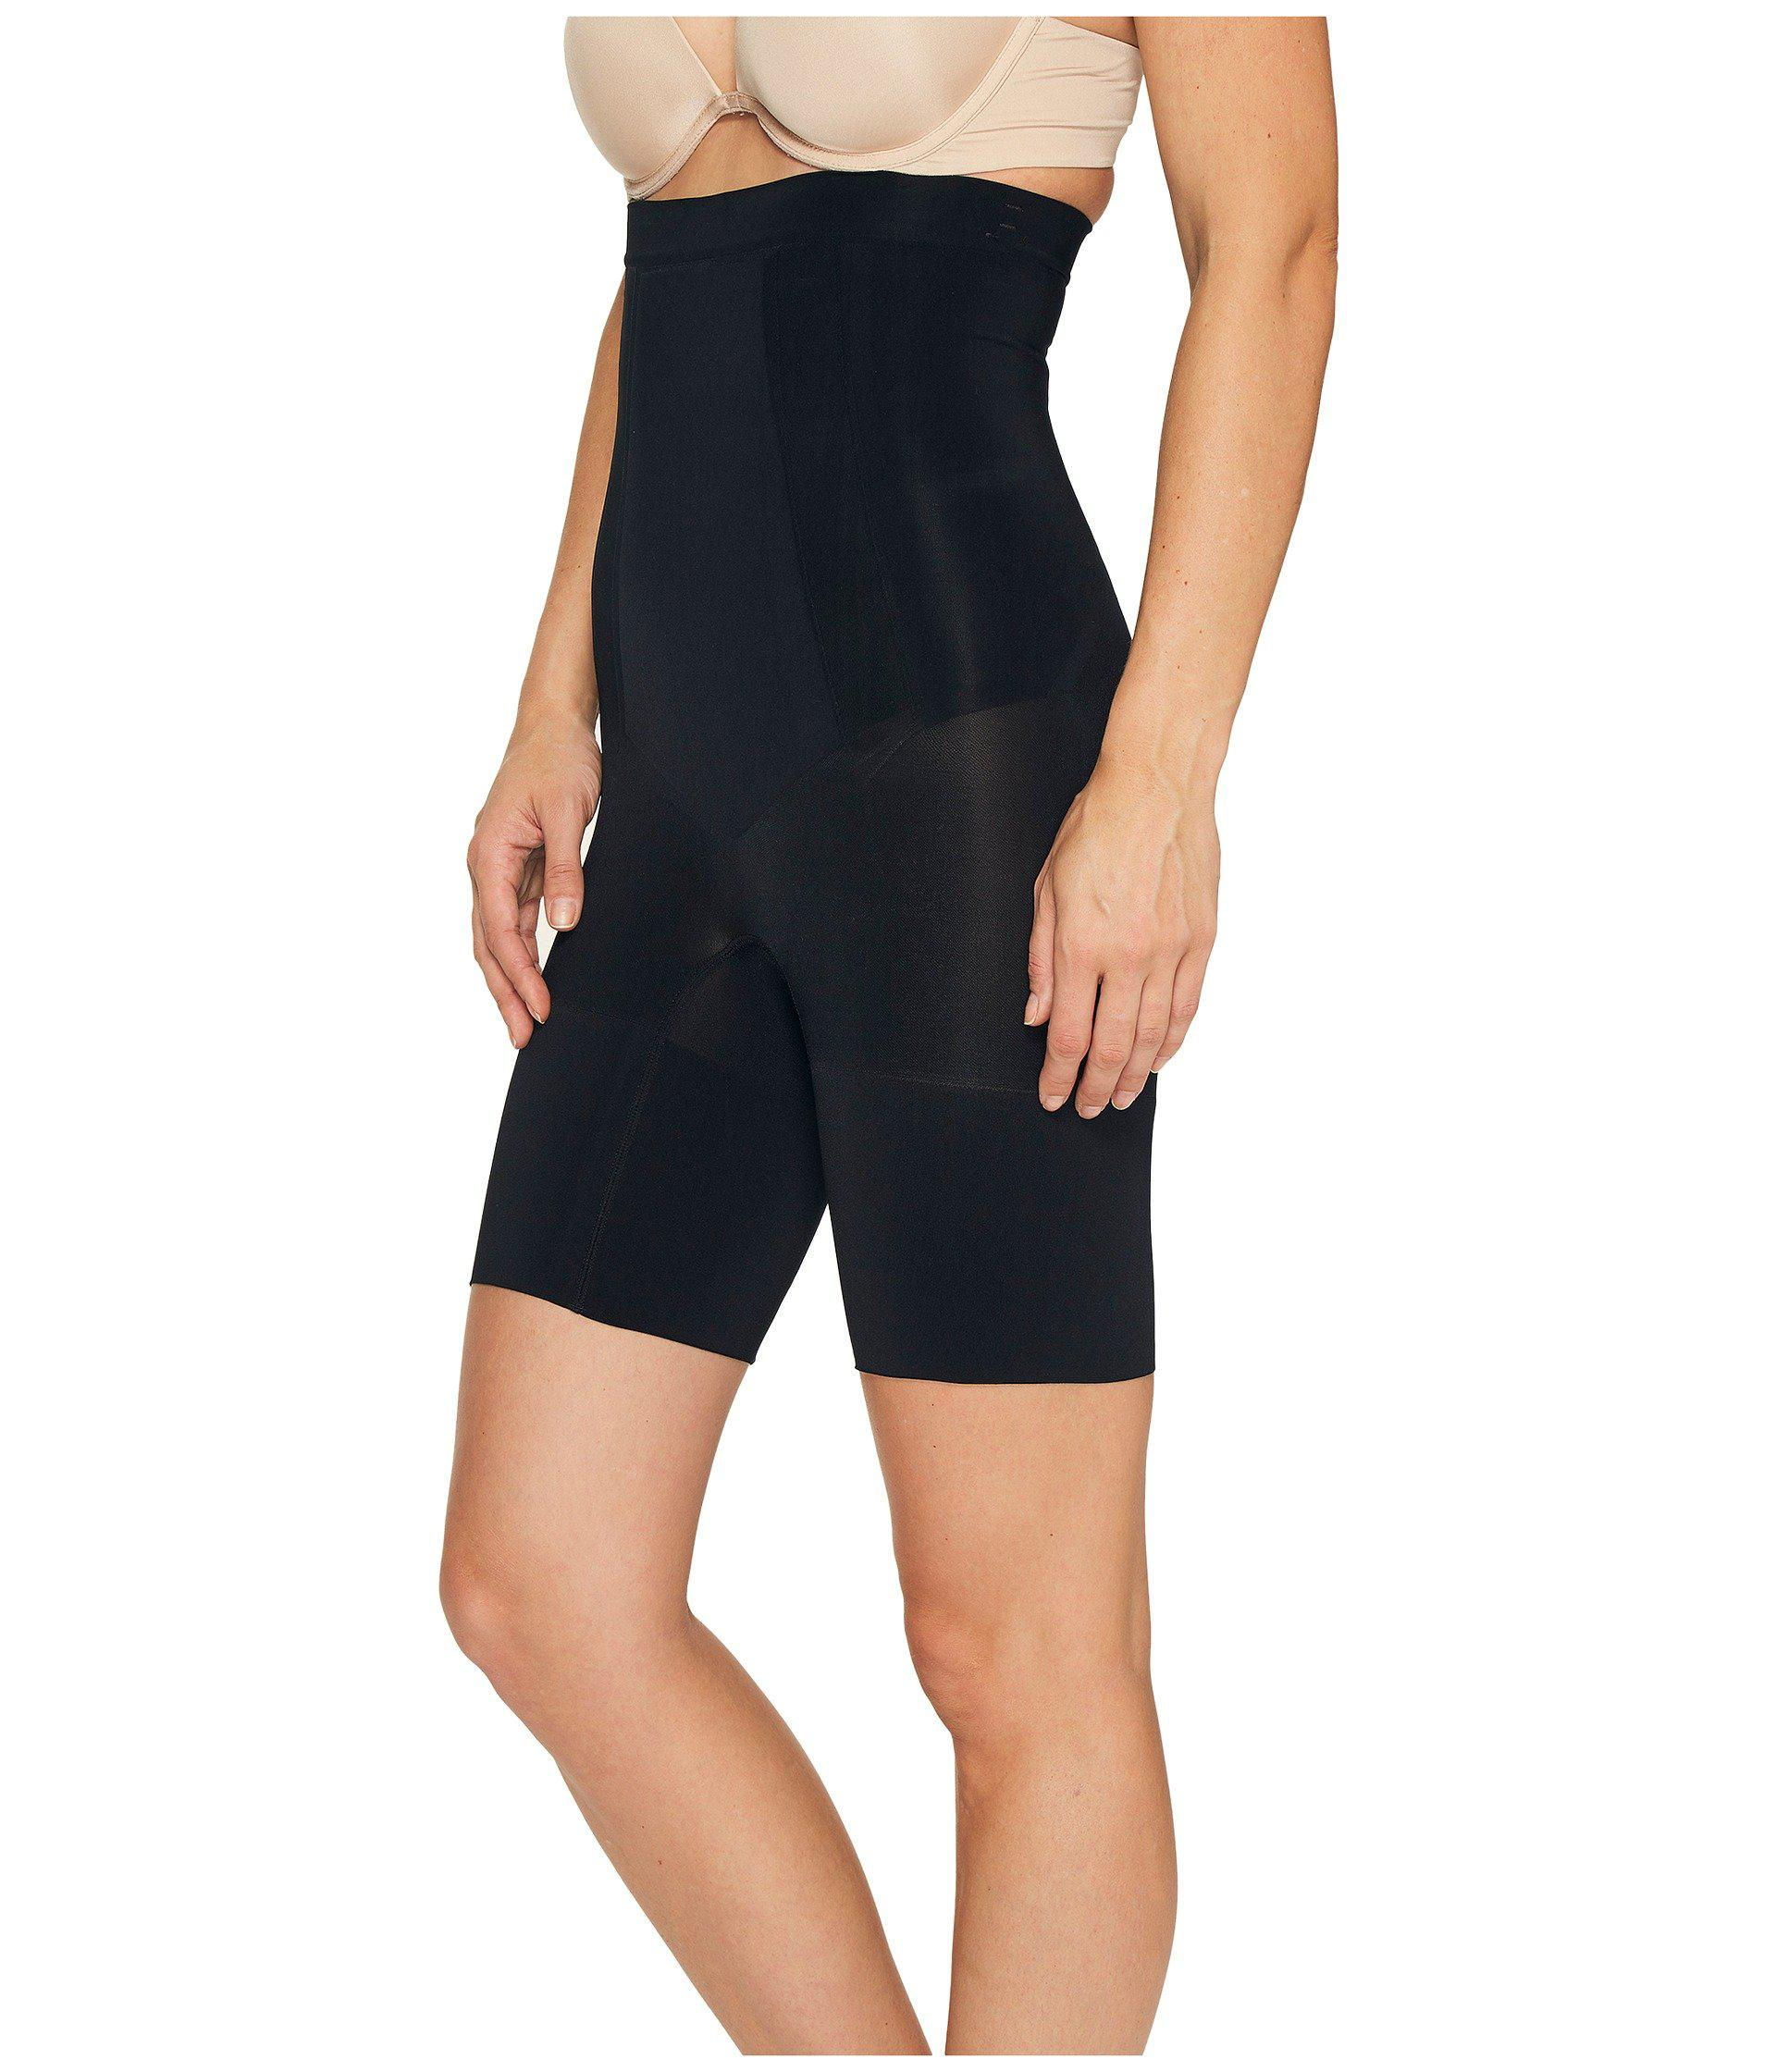 df094e70b1 Spanx Oncore High-waisted Mid-thigh Short (very Black) Women's ...